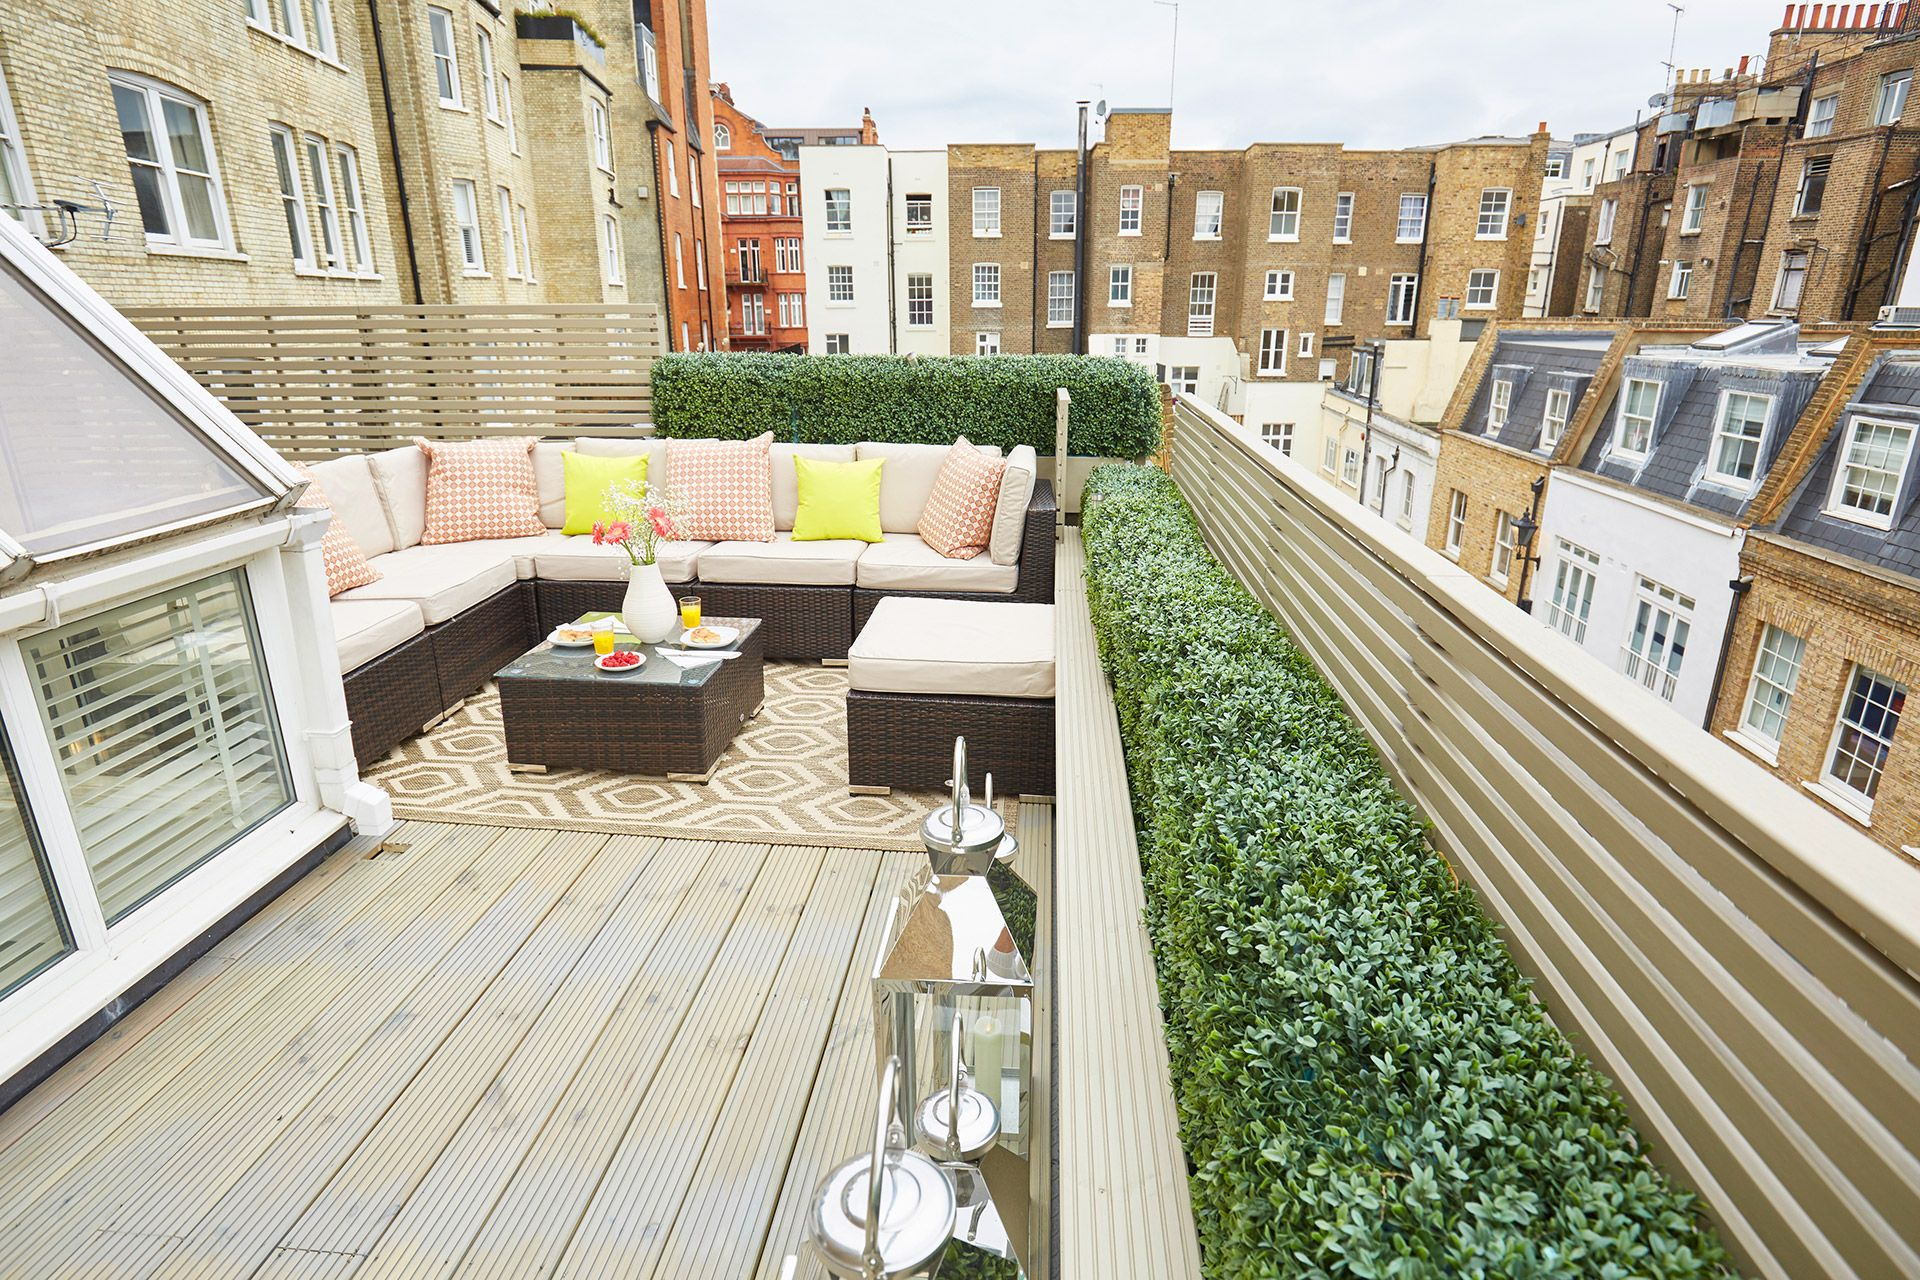 Expansive rooftop terrace of the Danebury vacation rental offered by London Perfect